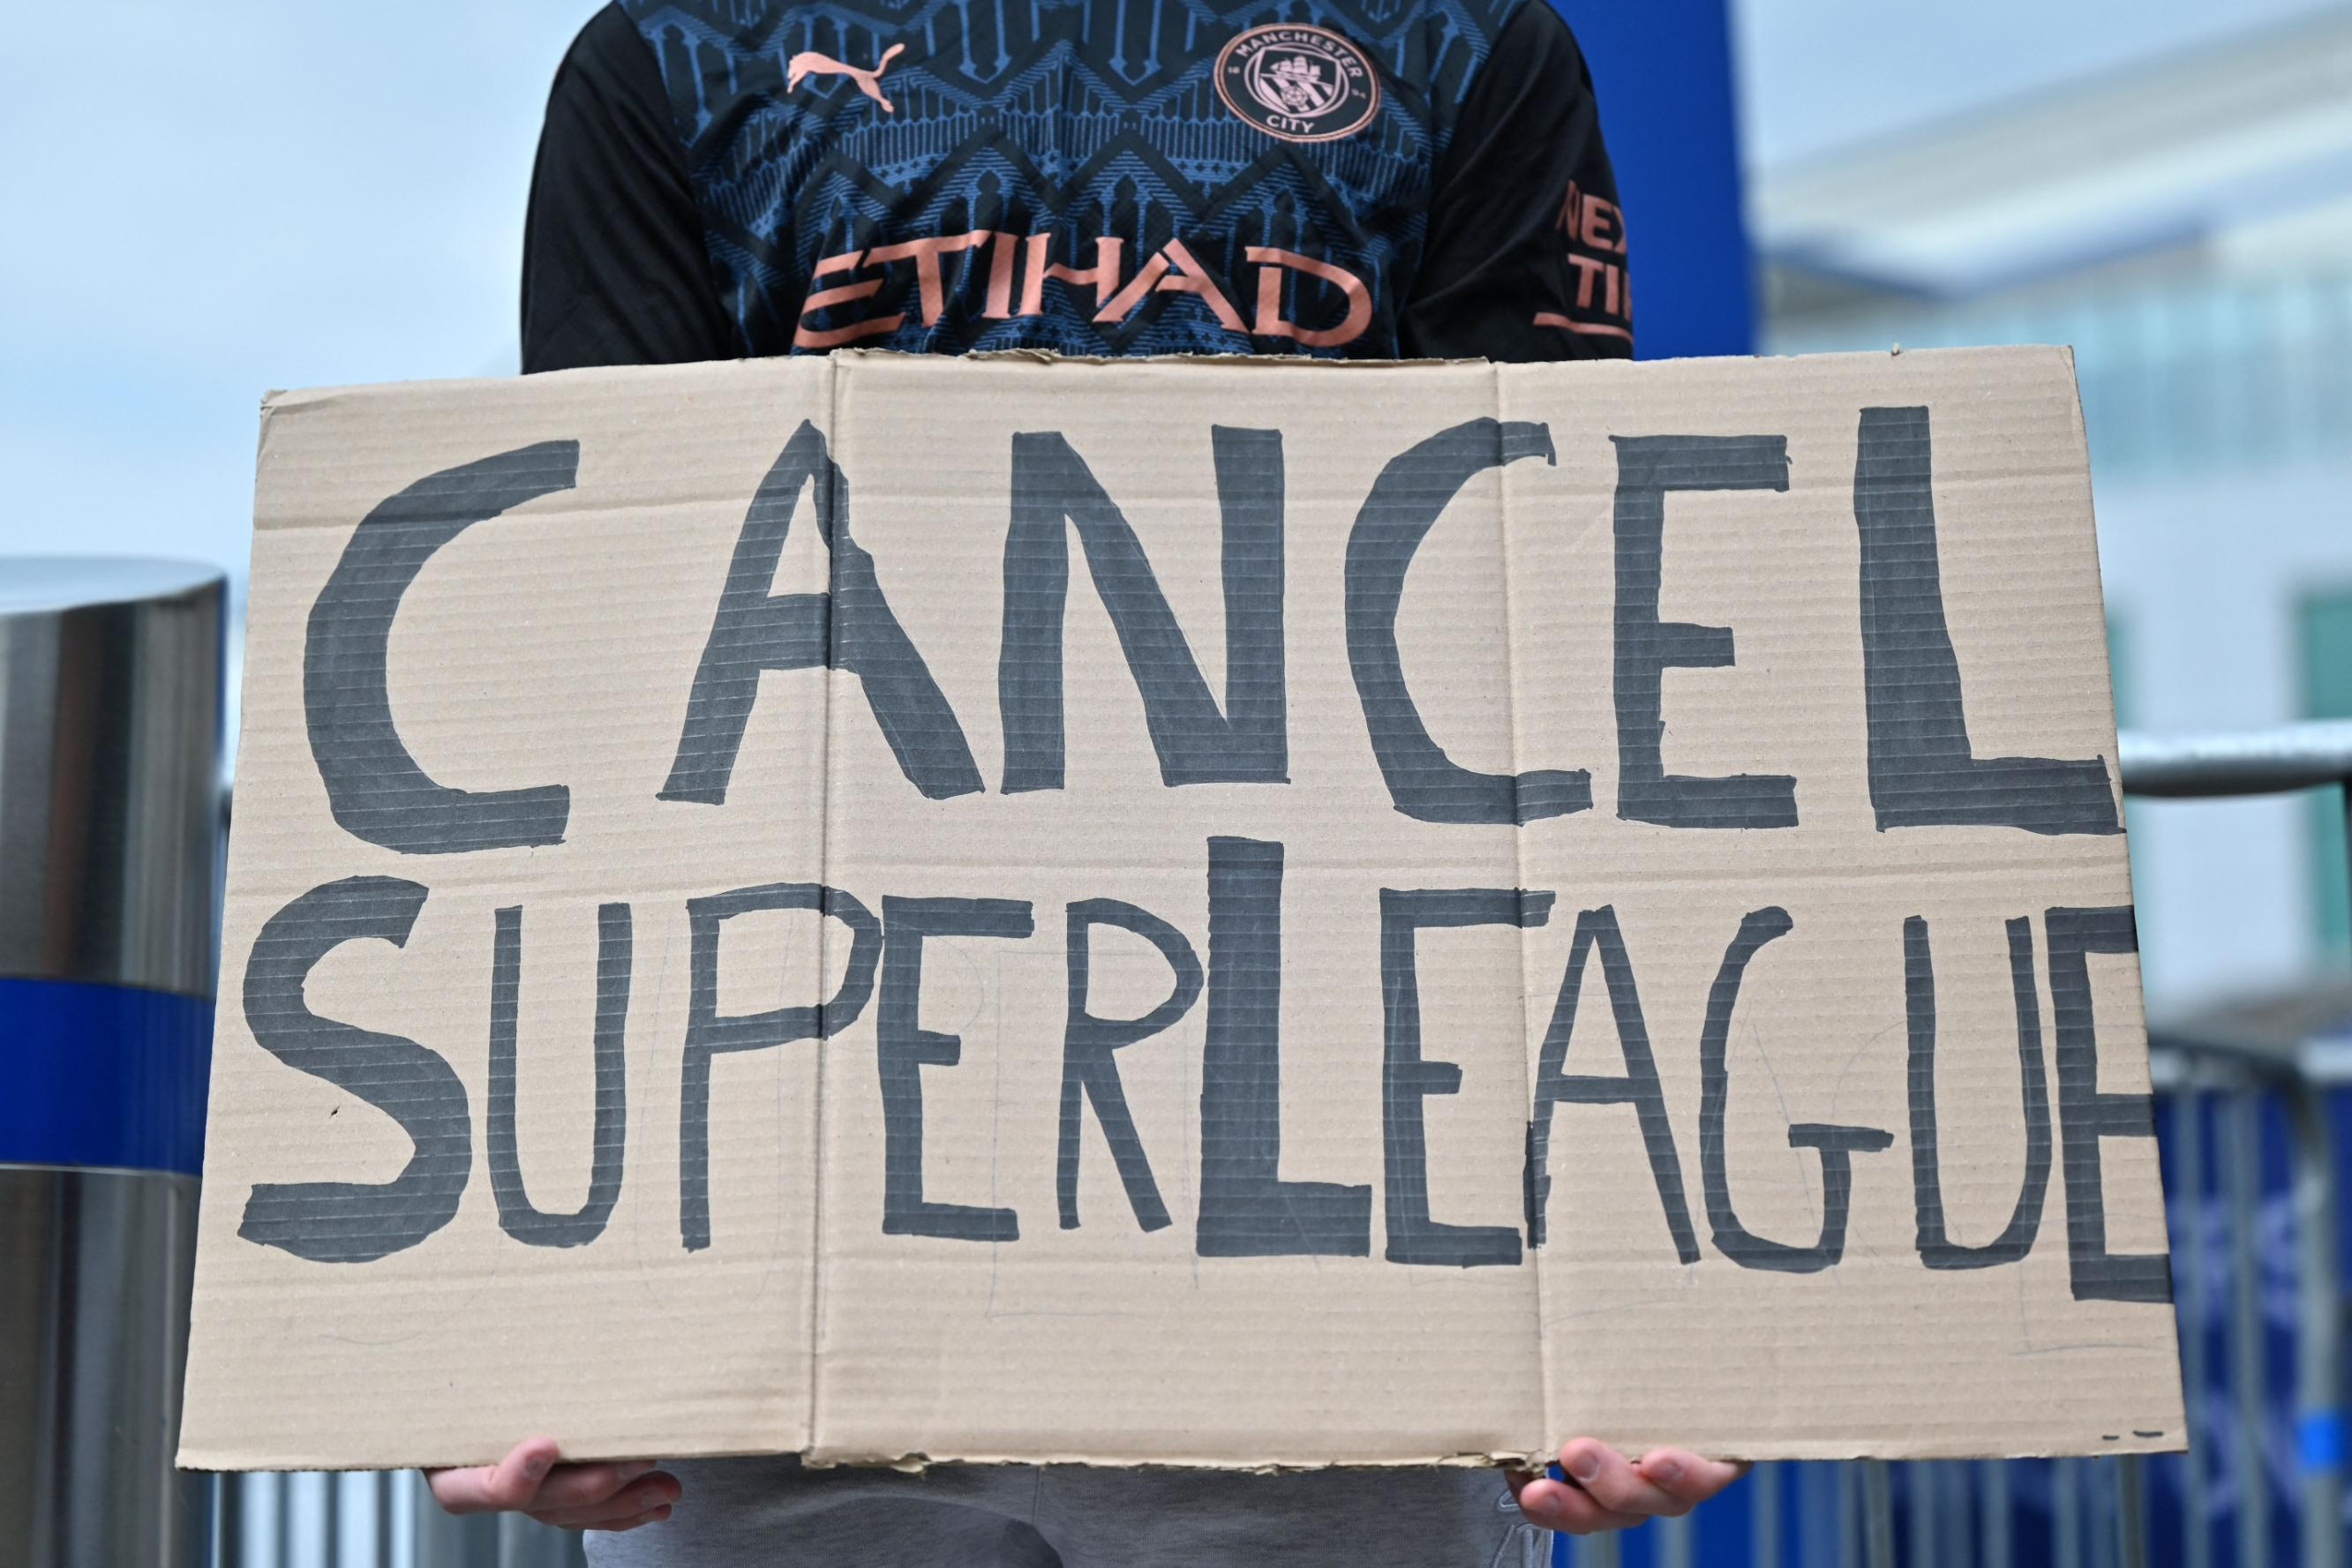 European Super League crumbles after majority of teams announce withdrawal